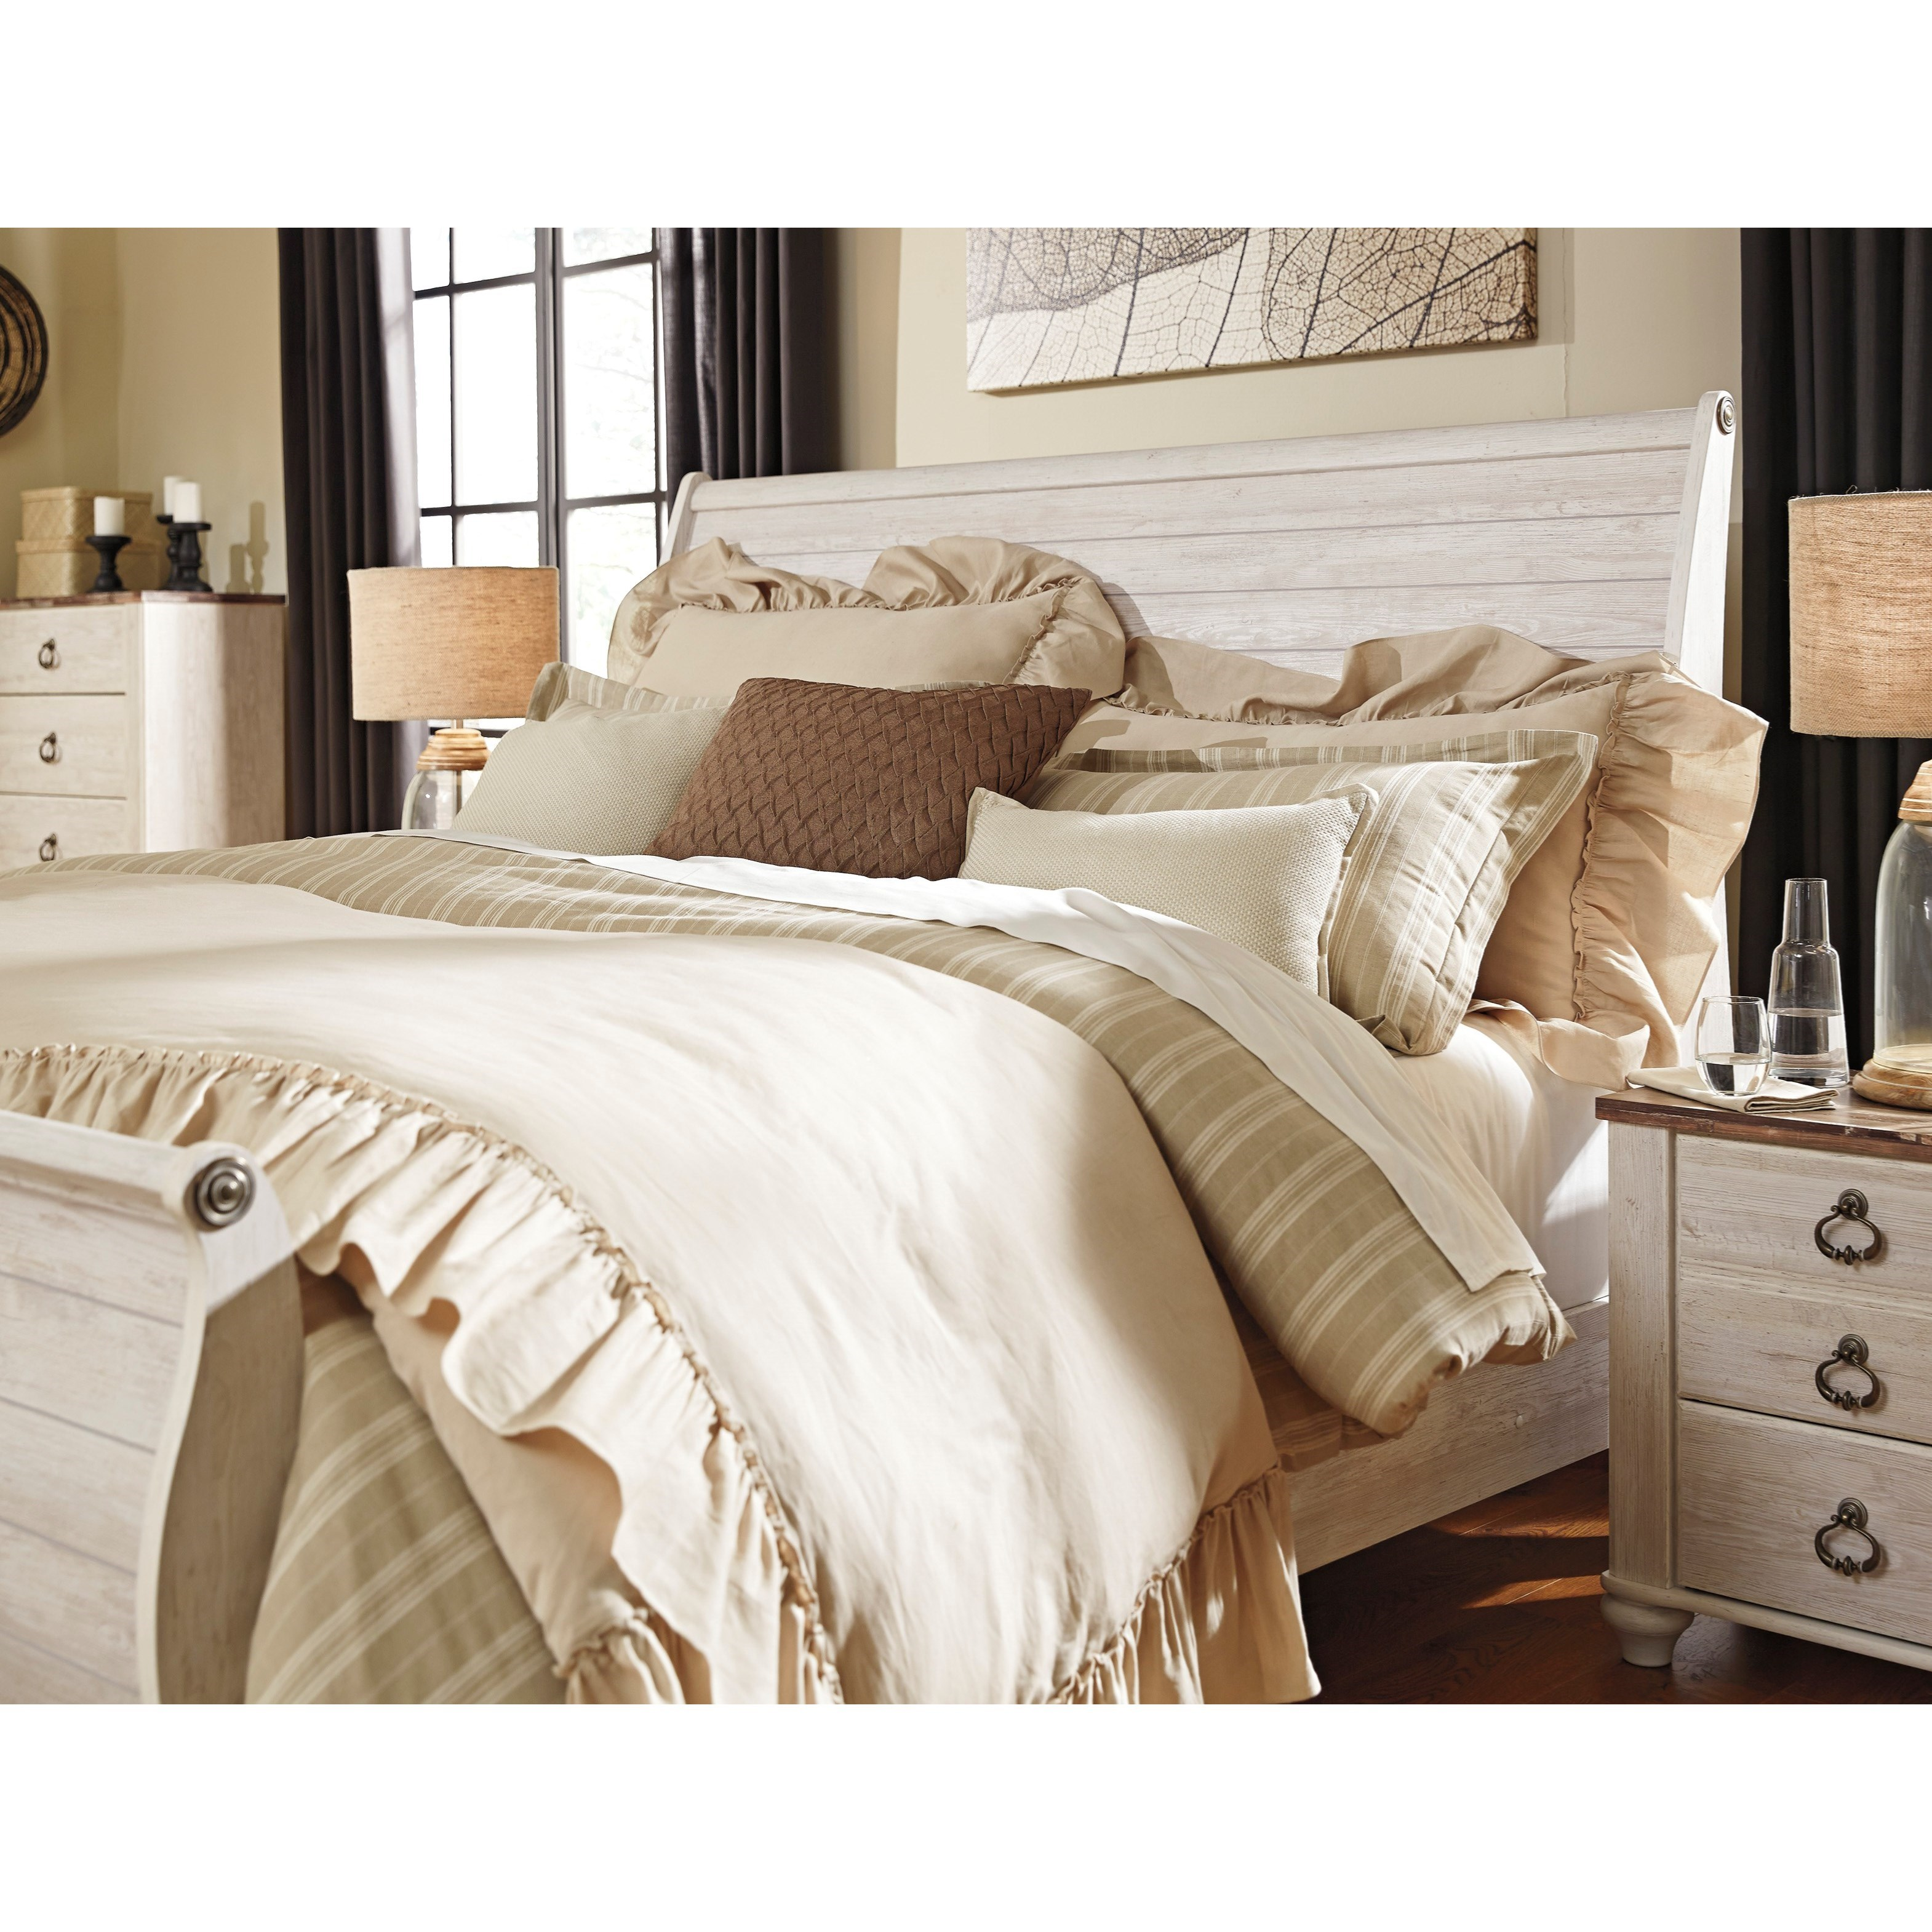 Signature Design By Ashley Willowton Queen Bedroom Group: Ashley (Signature Design) Willowton Queen Sleigh Bed In